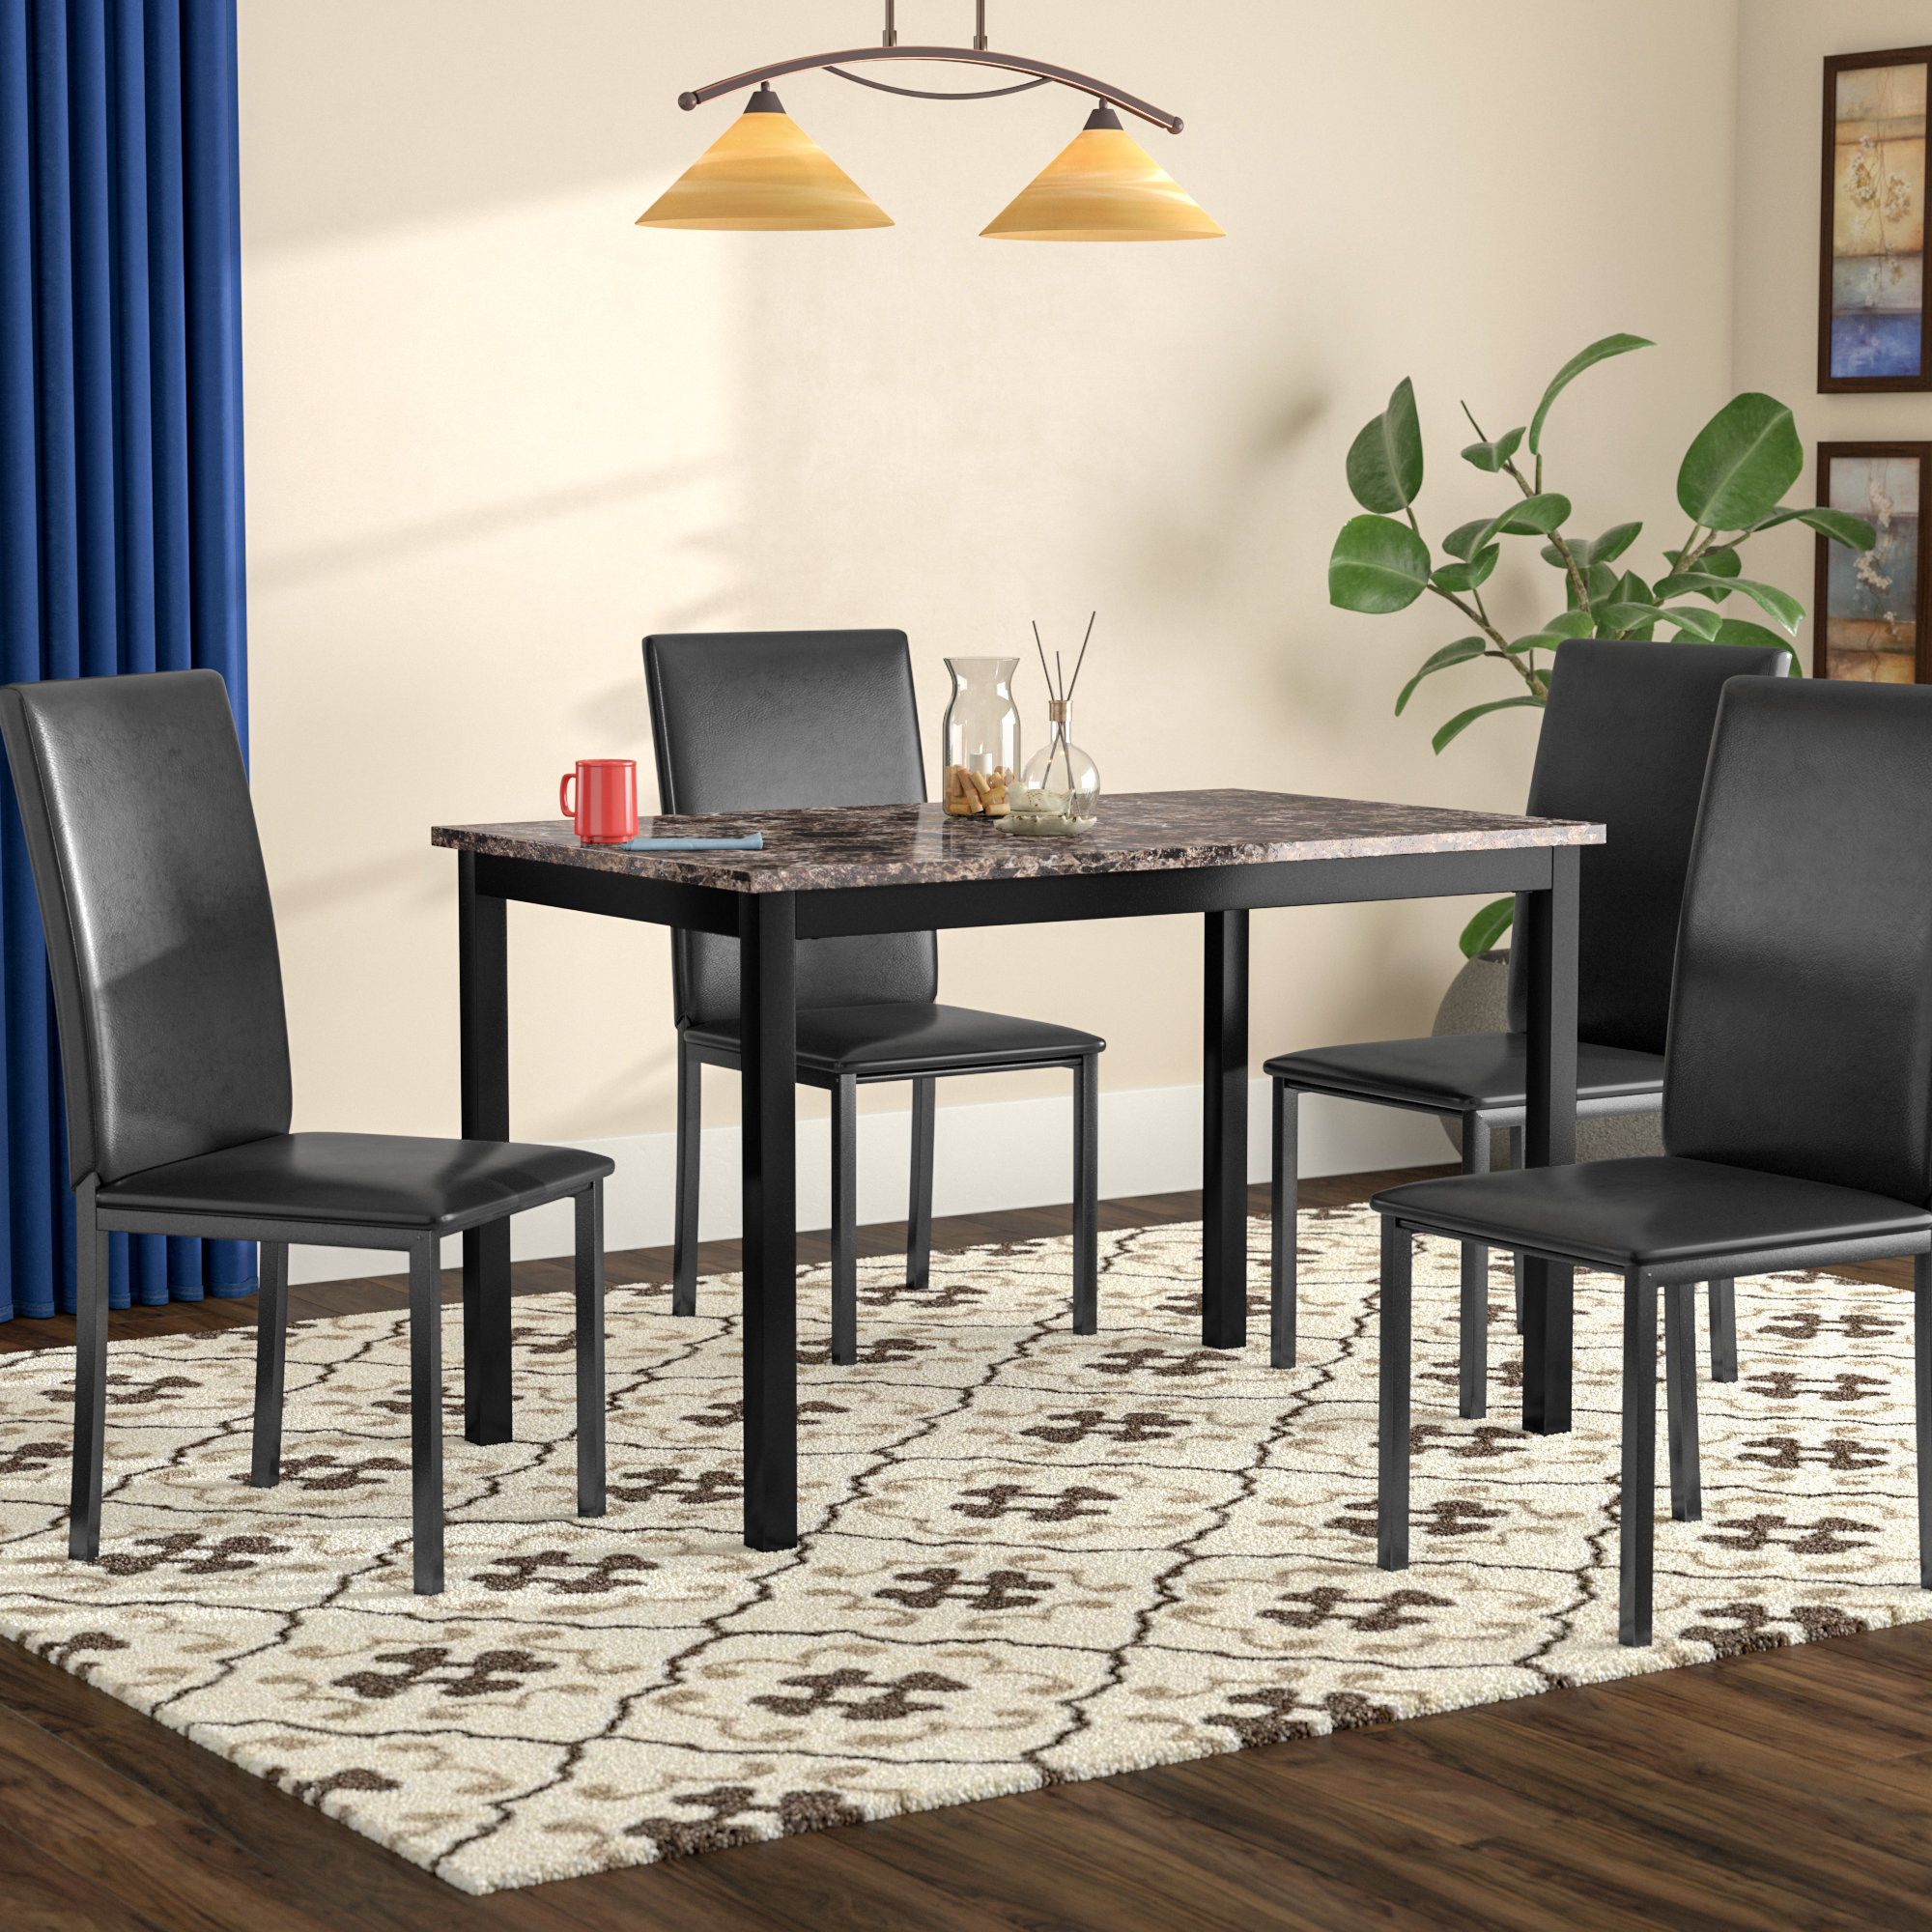 Red Barrel Studio Noyes 5 Piece Dining Set & Reviews   Wayfair With Regard To Newest Anette 3 Piece Counter Height Dining Sets (View 19 of 20)